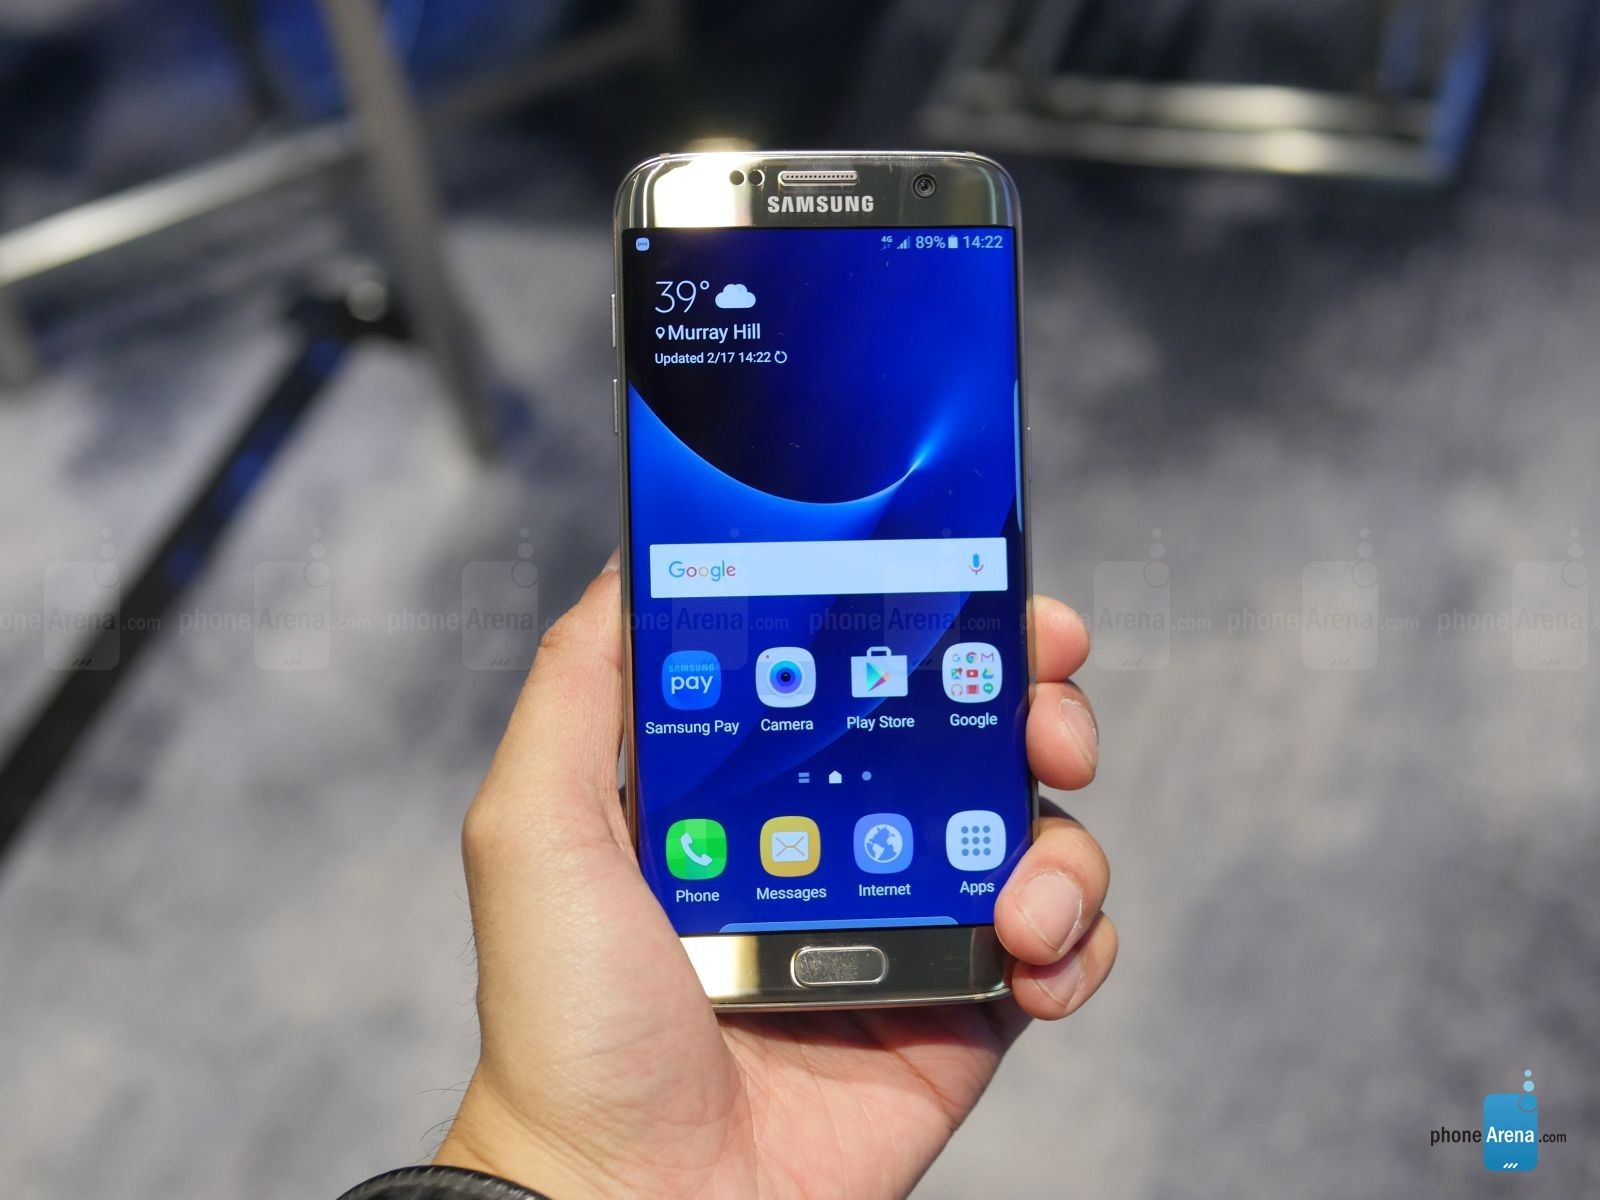 Samsung Galaxy S7 Edge Hands On Image From Samsung Galaxy S7 Edge Hands On Samsung Galaxy S7 Samsung Galaxy S7 Edge Samsung Galaxy